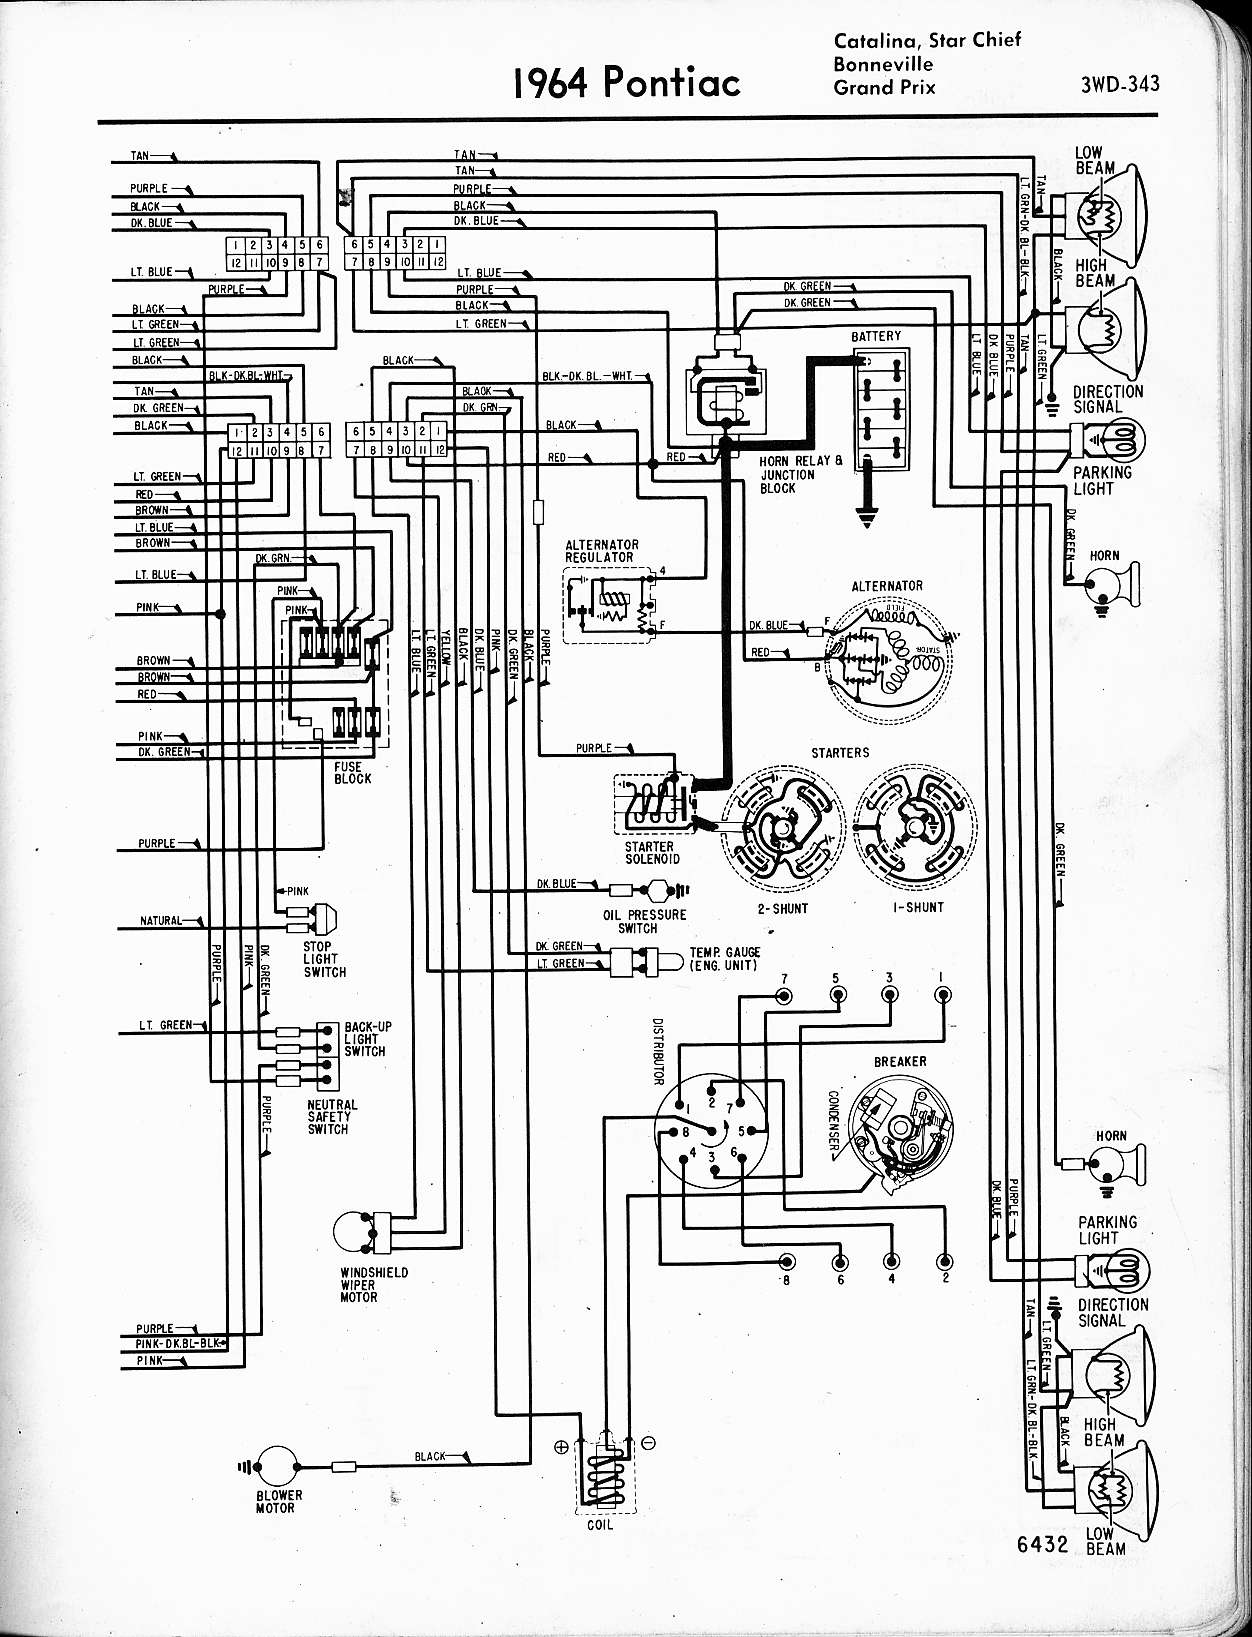 1968 Corvette Turn Signal Wiring Diagram 1969 Wallace Racing Diagrams Rh Wallaceracing Com Wiper Motor